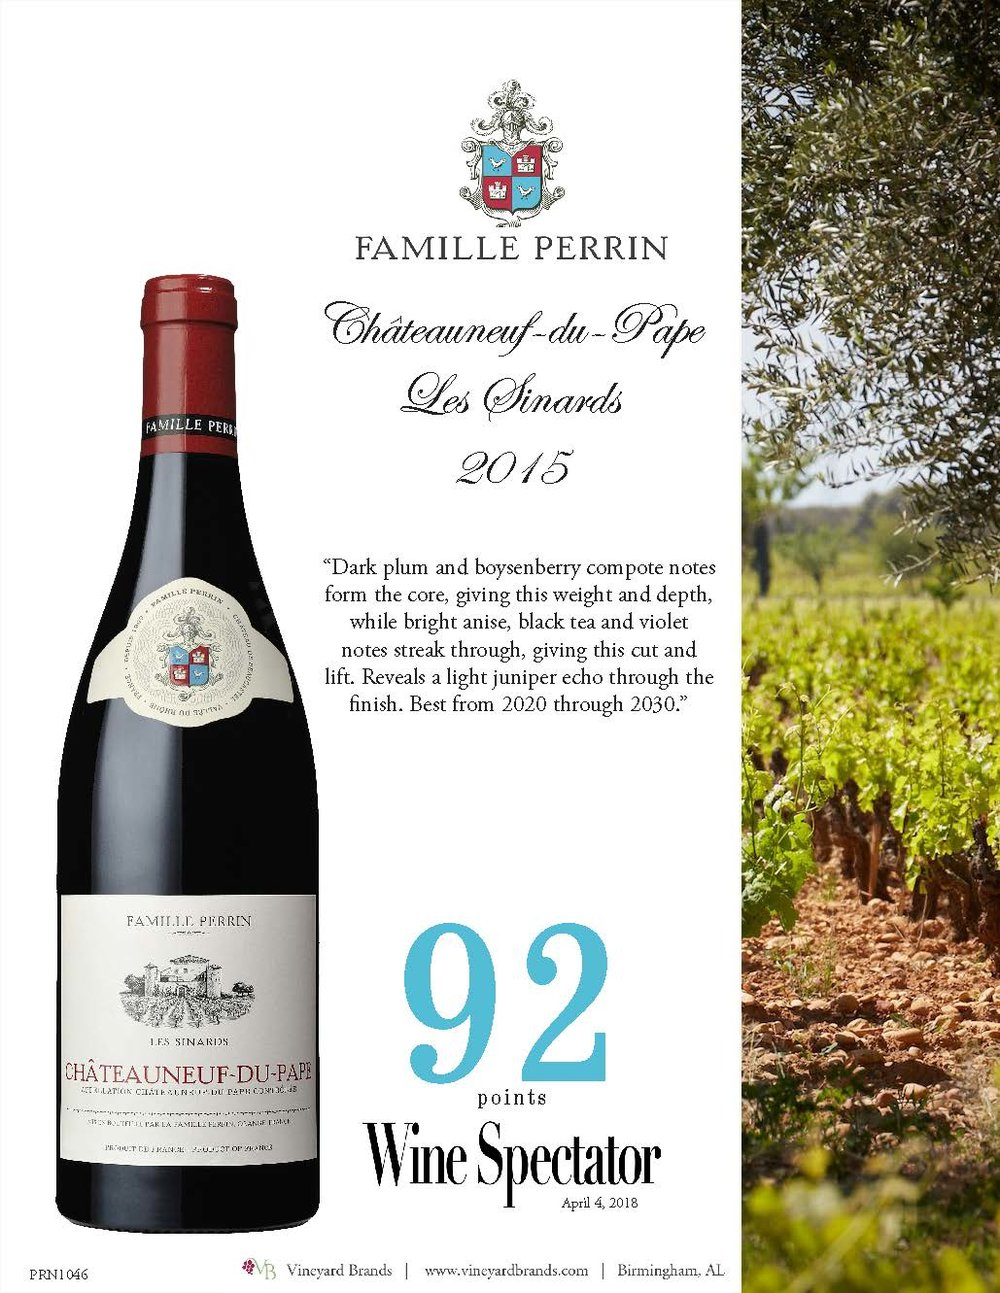 Famille Perrin Chateauneuf du Pape Les Sinards 2015.jpg